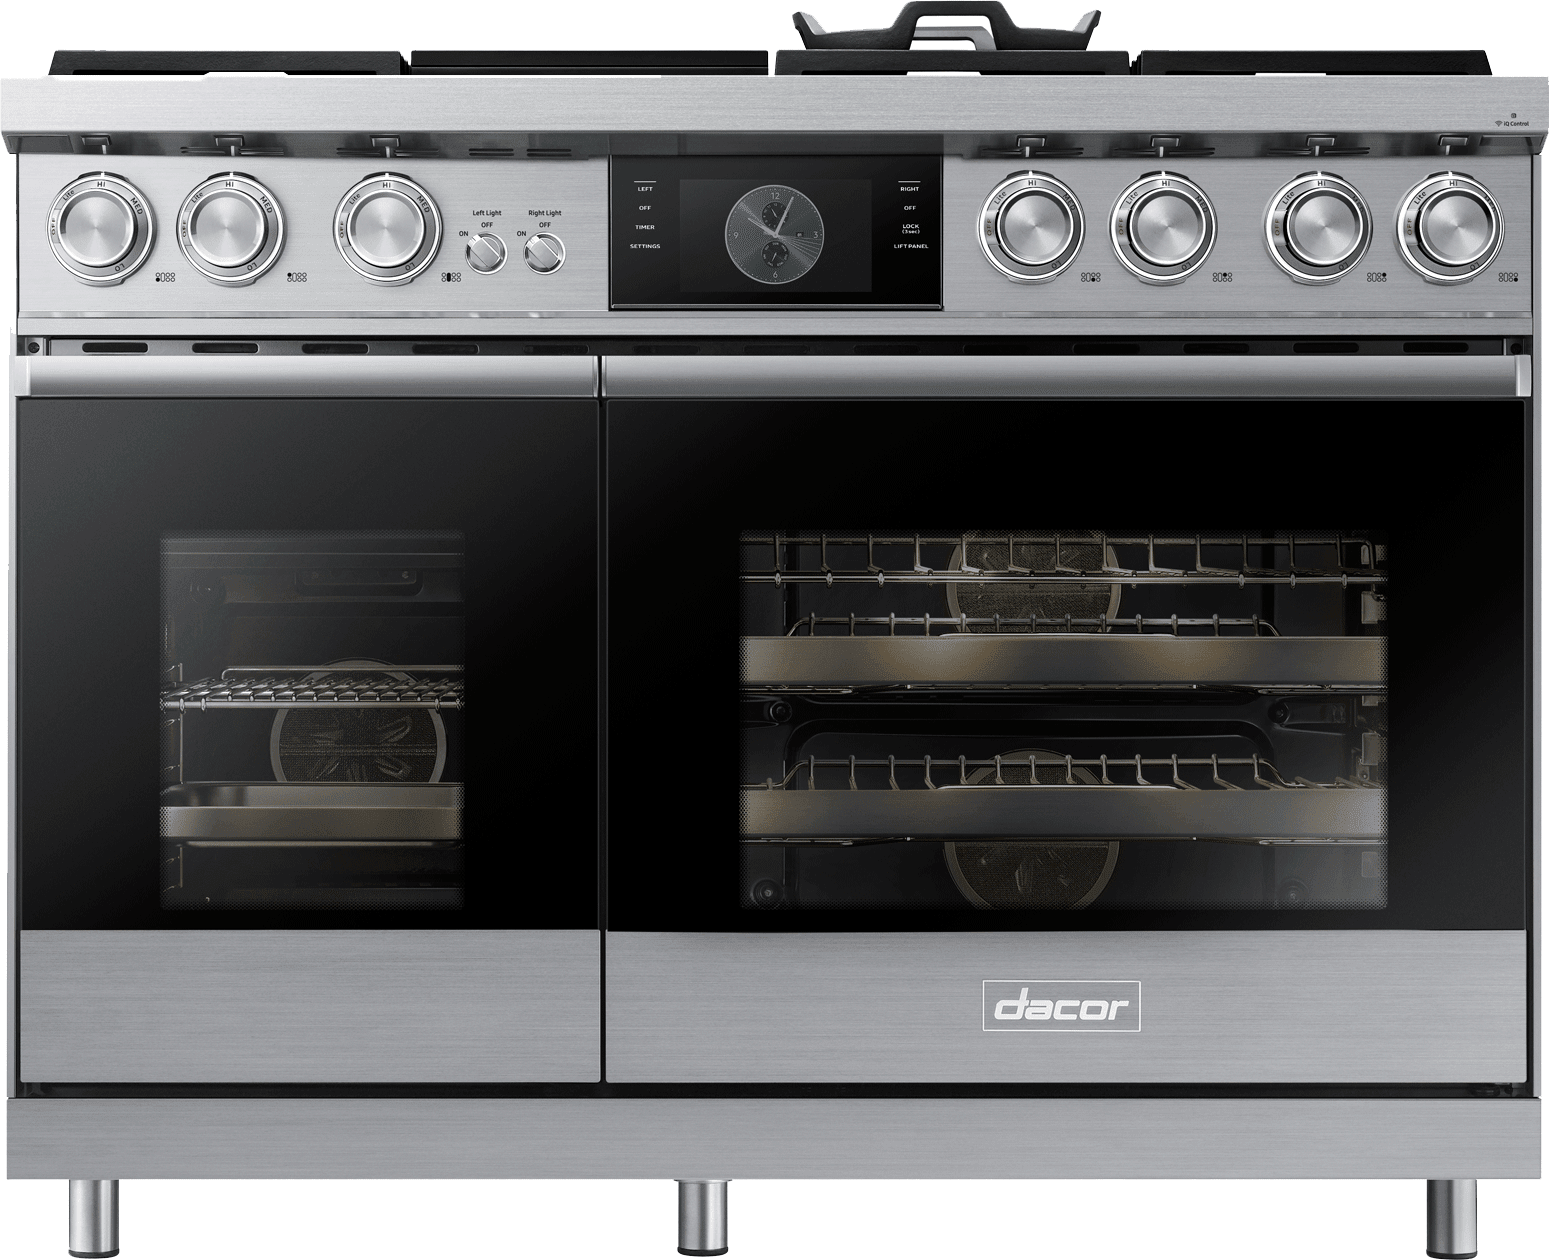 Dacor dop48m96dhs 48 inch freestanding dual fuel range for Dacor 48 rangetop